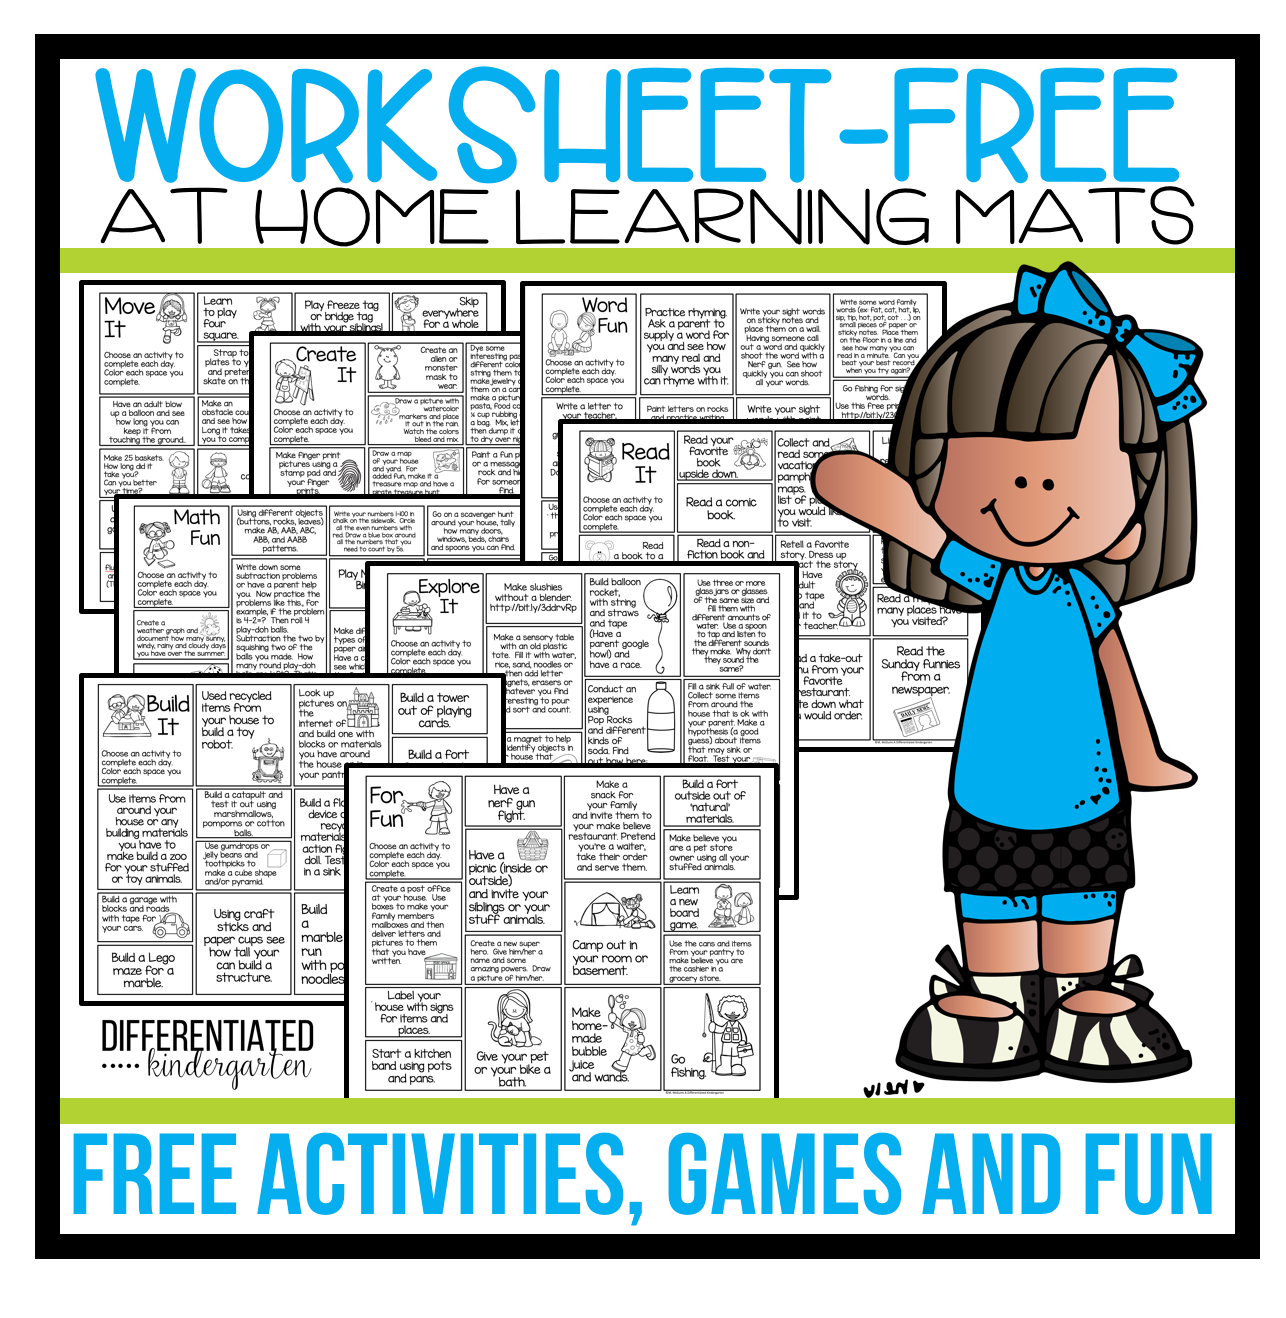 Free 'worksheet Free' At-Home Activities, Games And Ideas